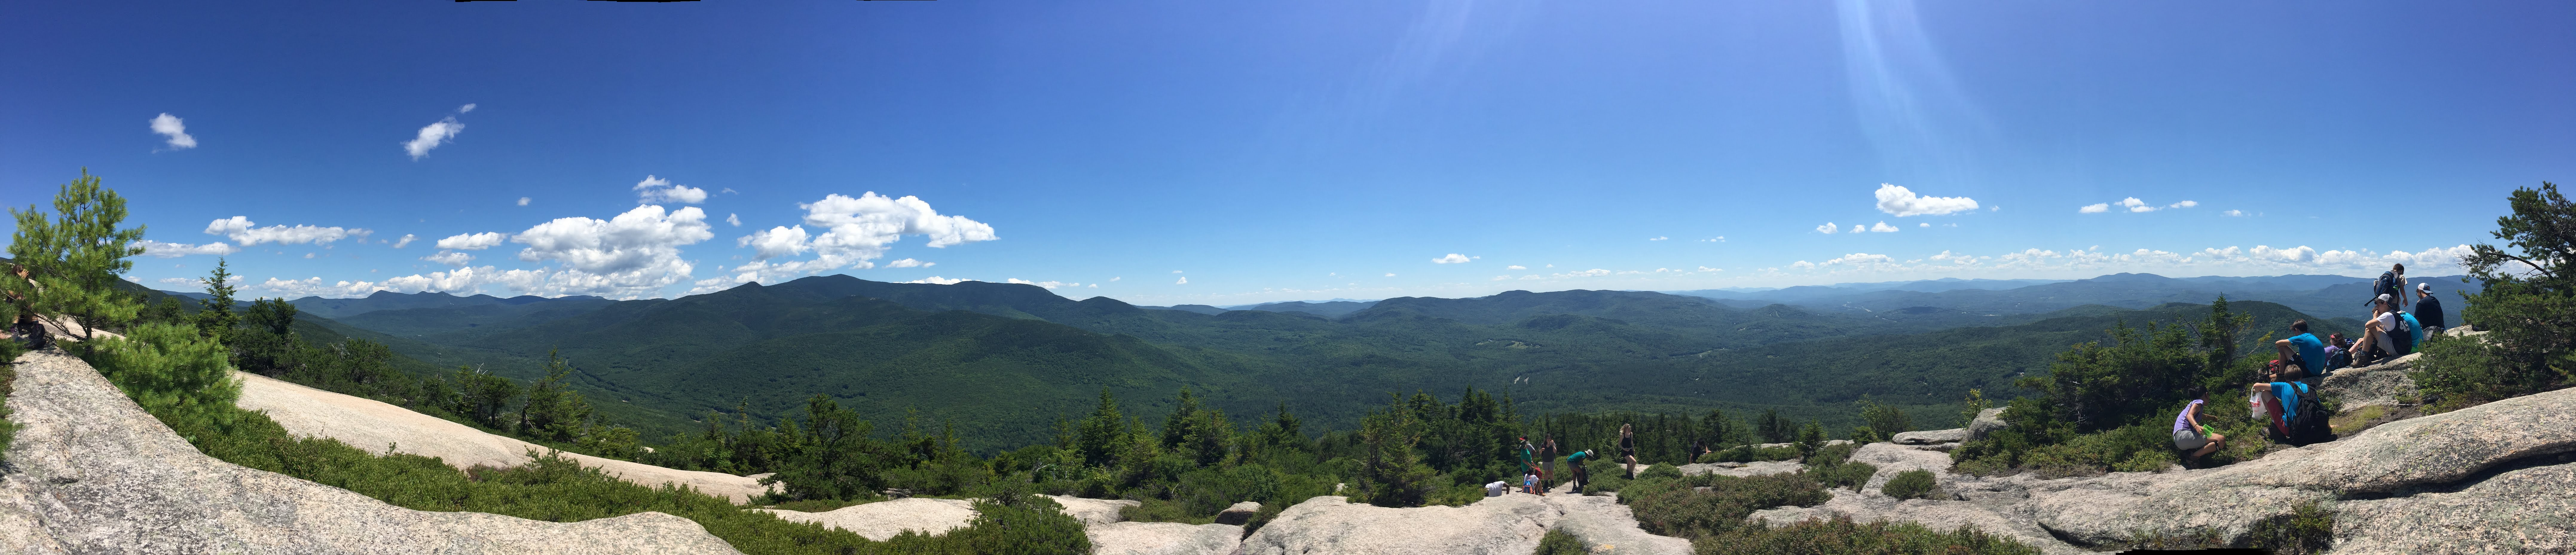 Welch-Dickey Panorama